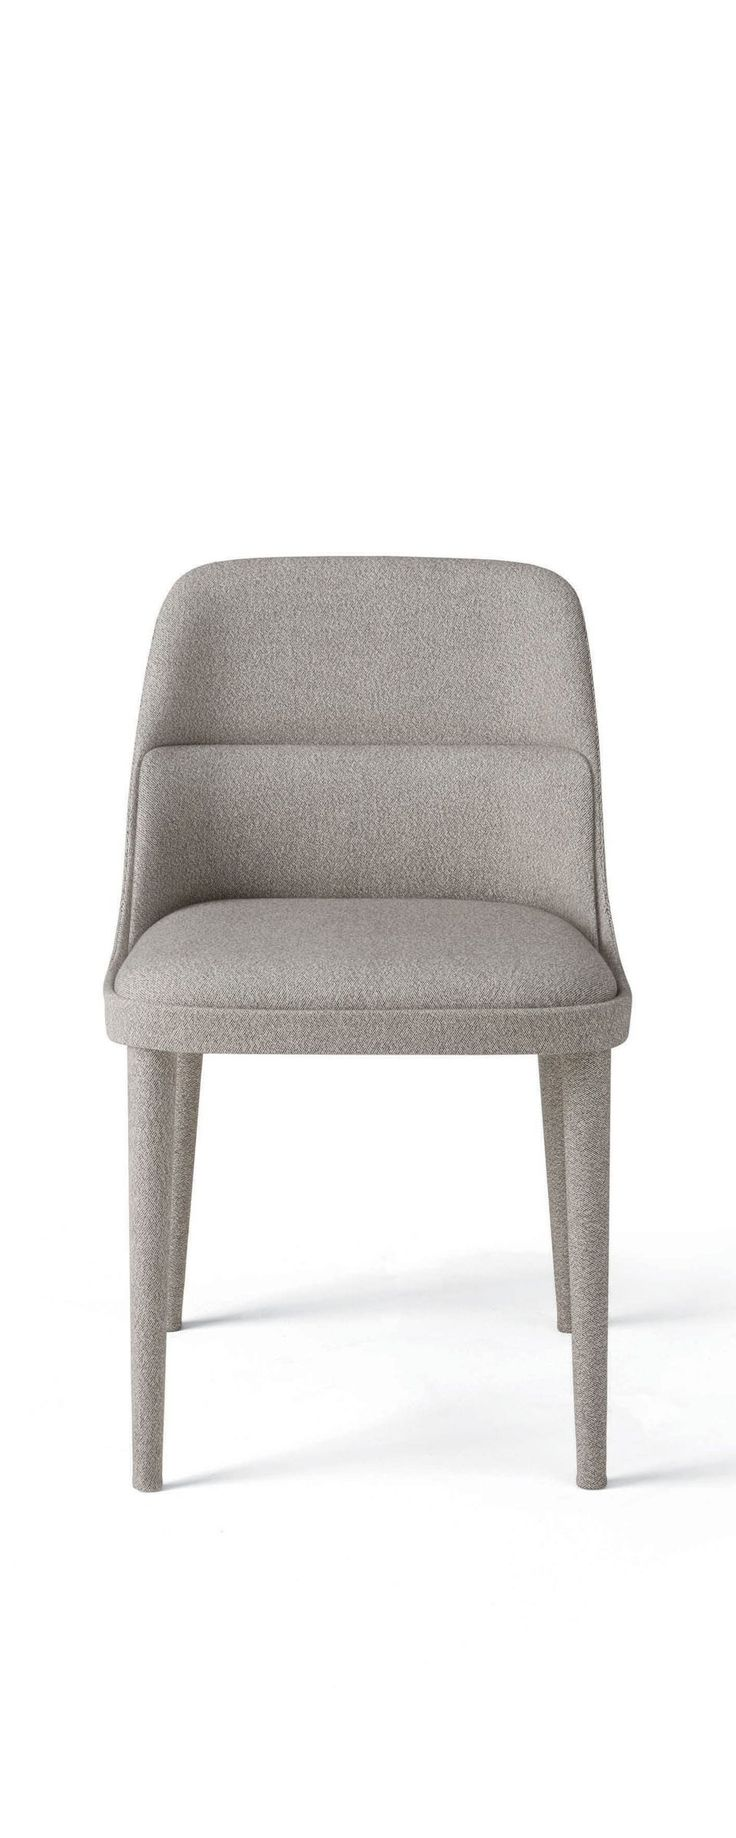 240 best NIDO dining chairs images on Pinterest | Dining chairs ...